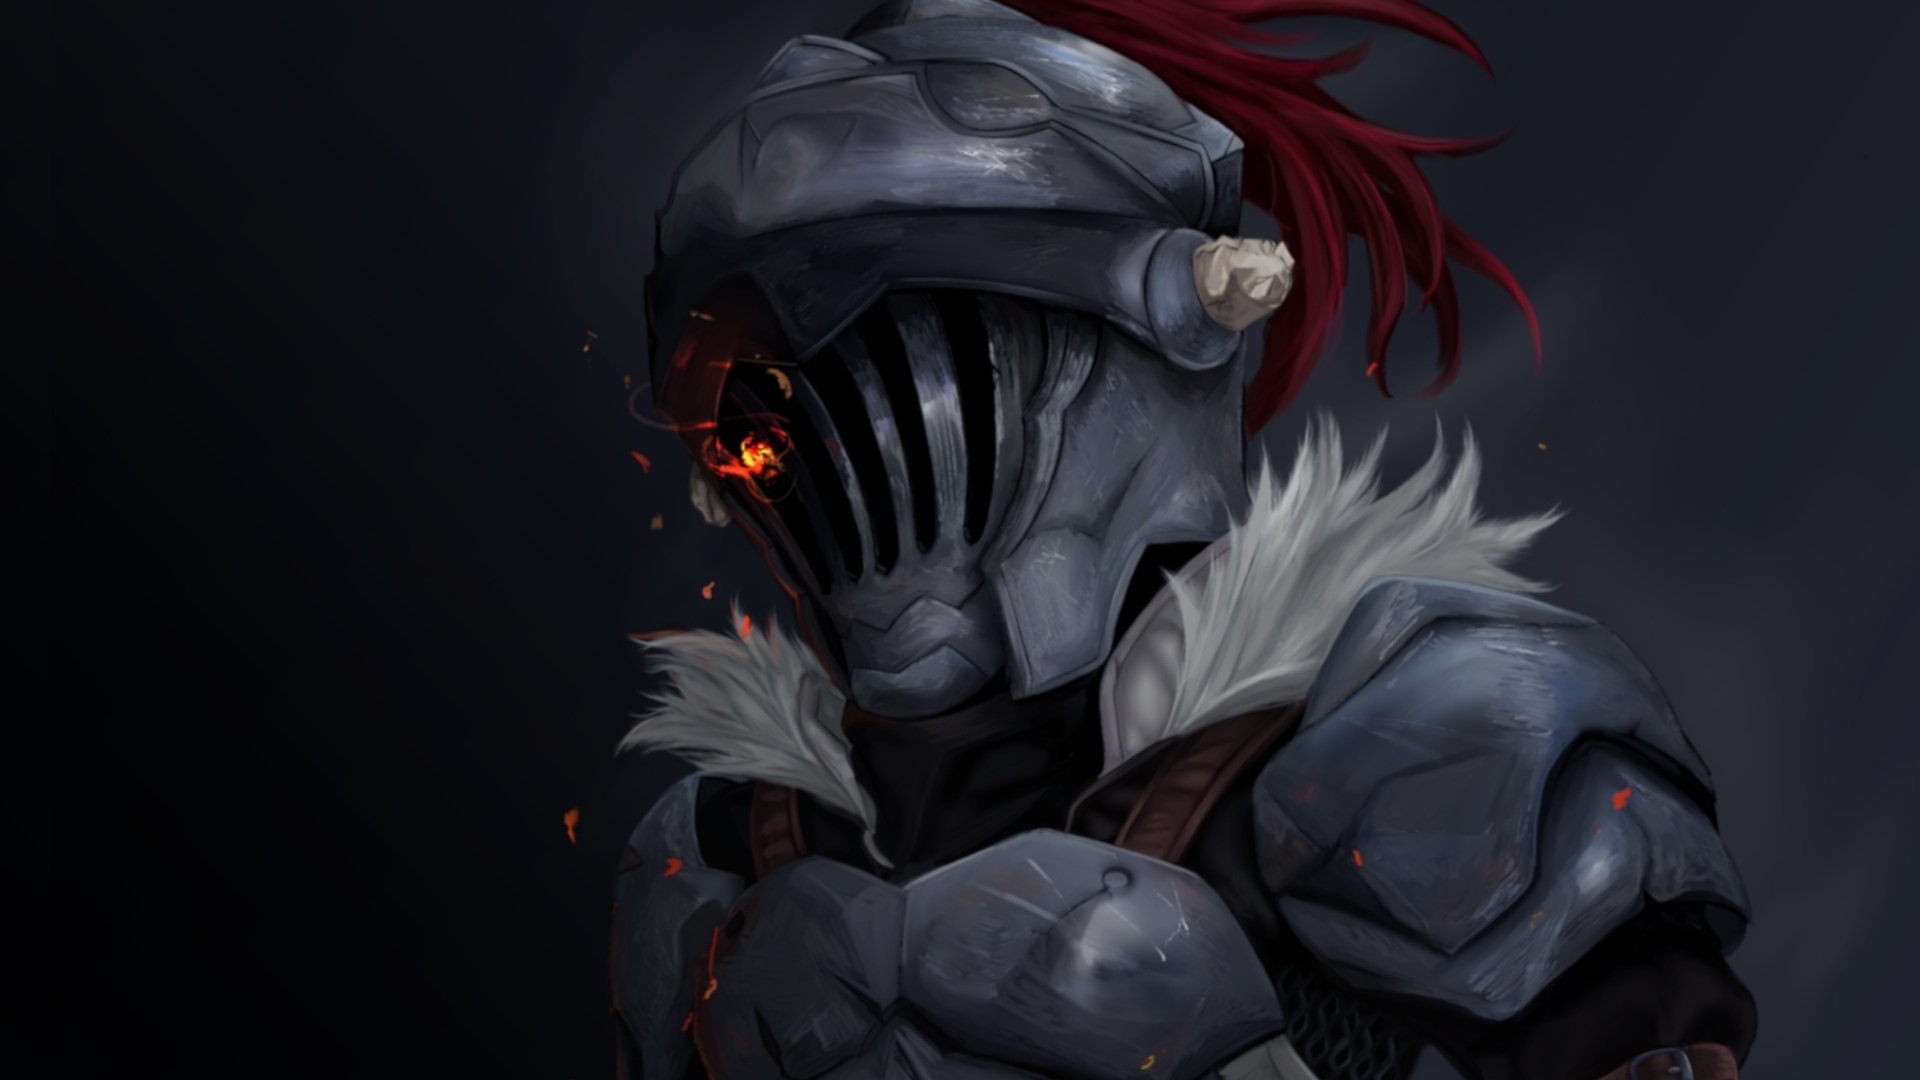 Download 1920x1080 wallpaper anime goblin slayer soldier - 1920x1080 wallpapers anime ...